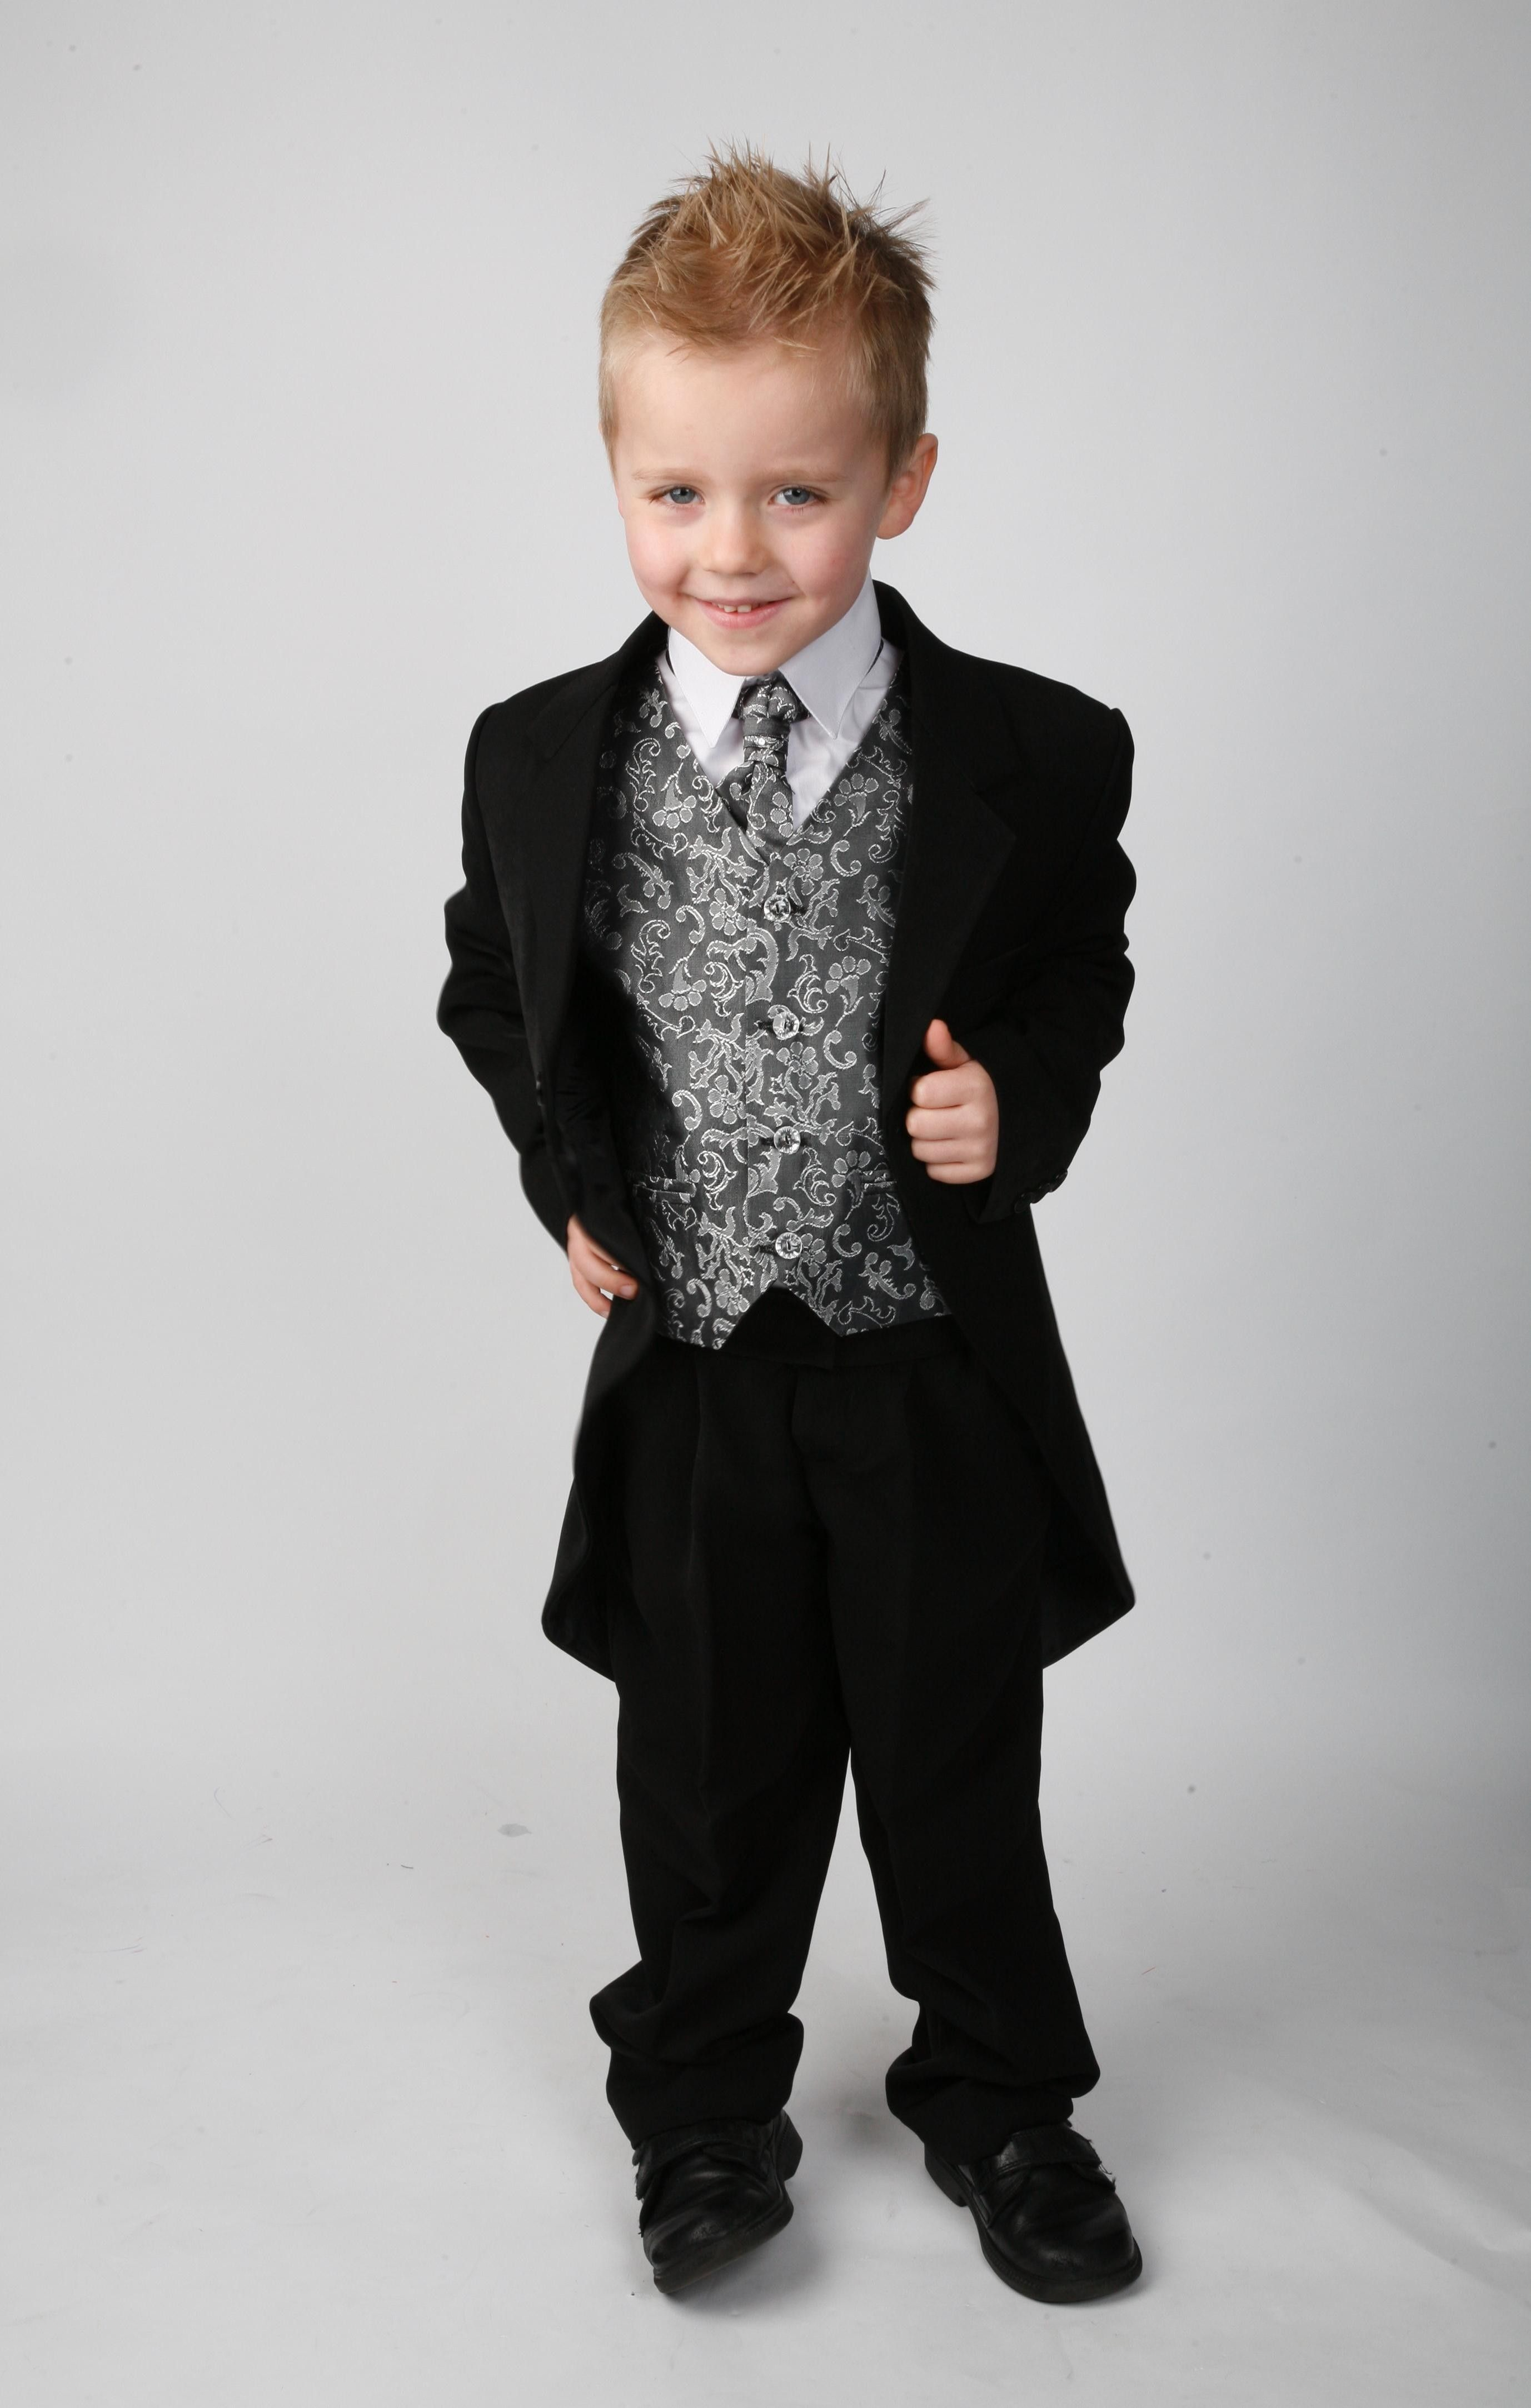 Silver Waistcoat Page Boy Suits Wedding Suits Boys Grey Tail Suit Boys Suits